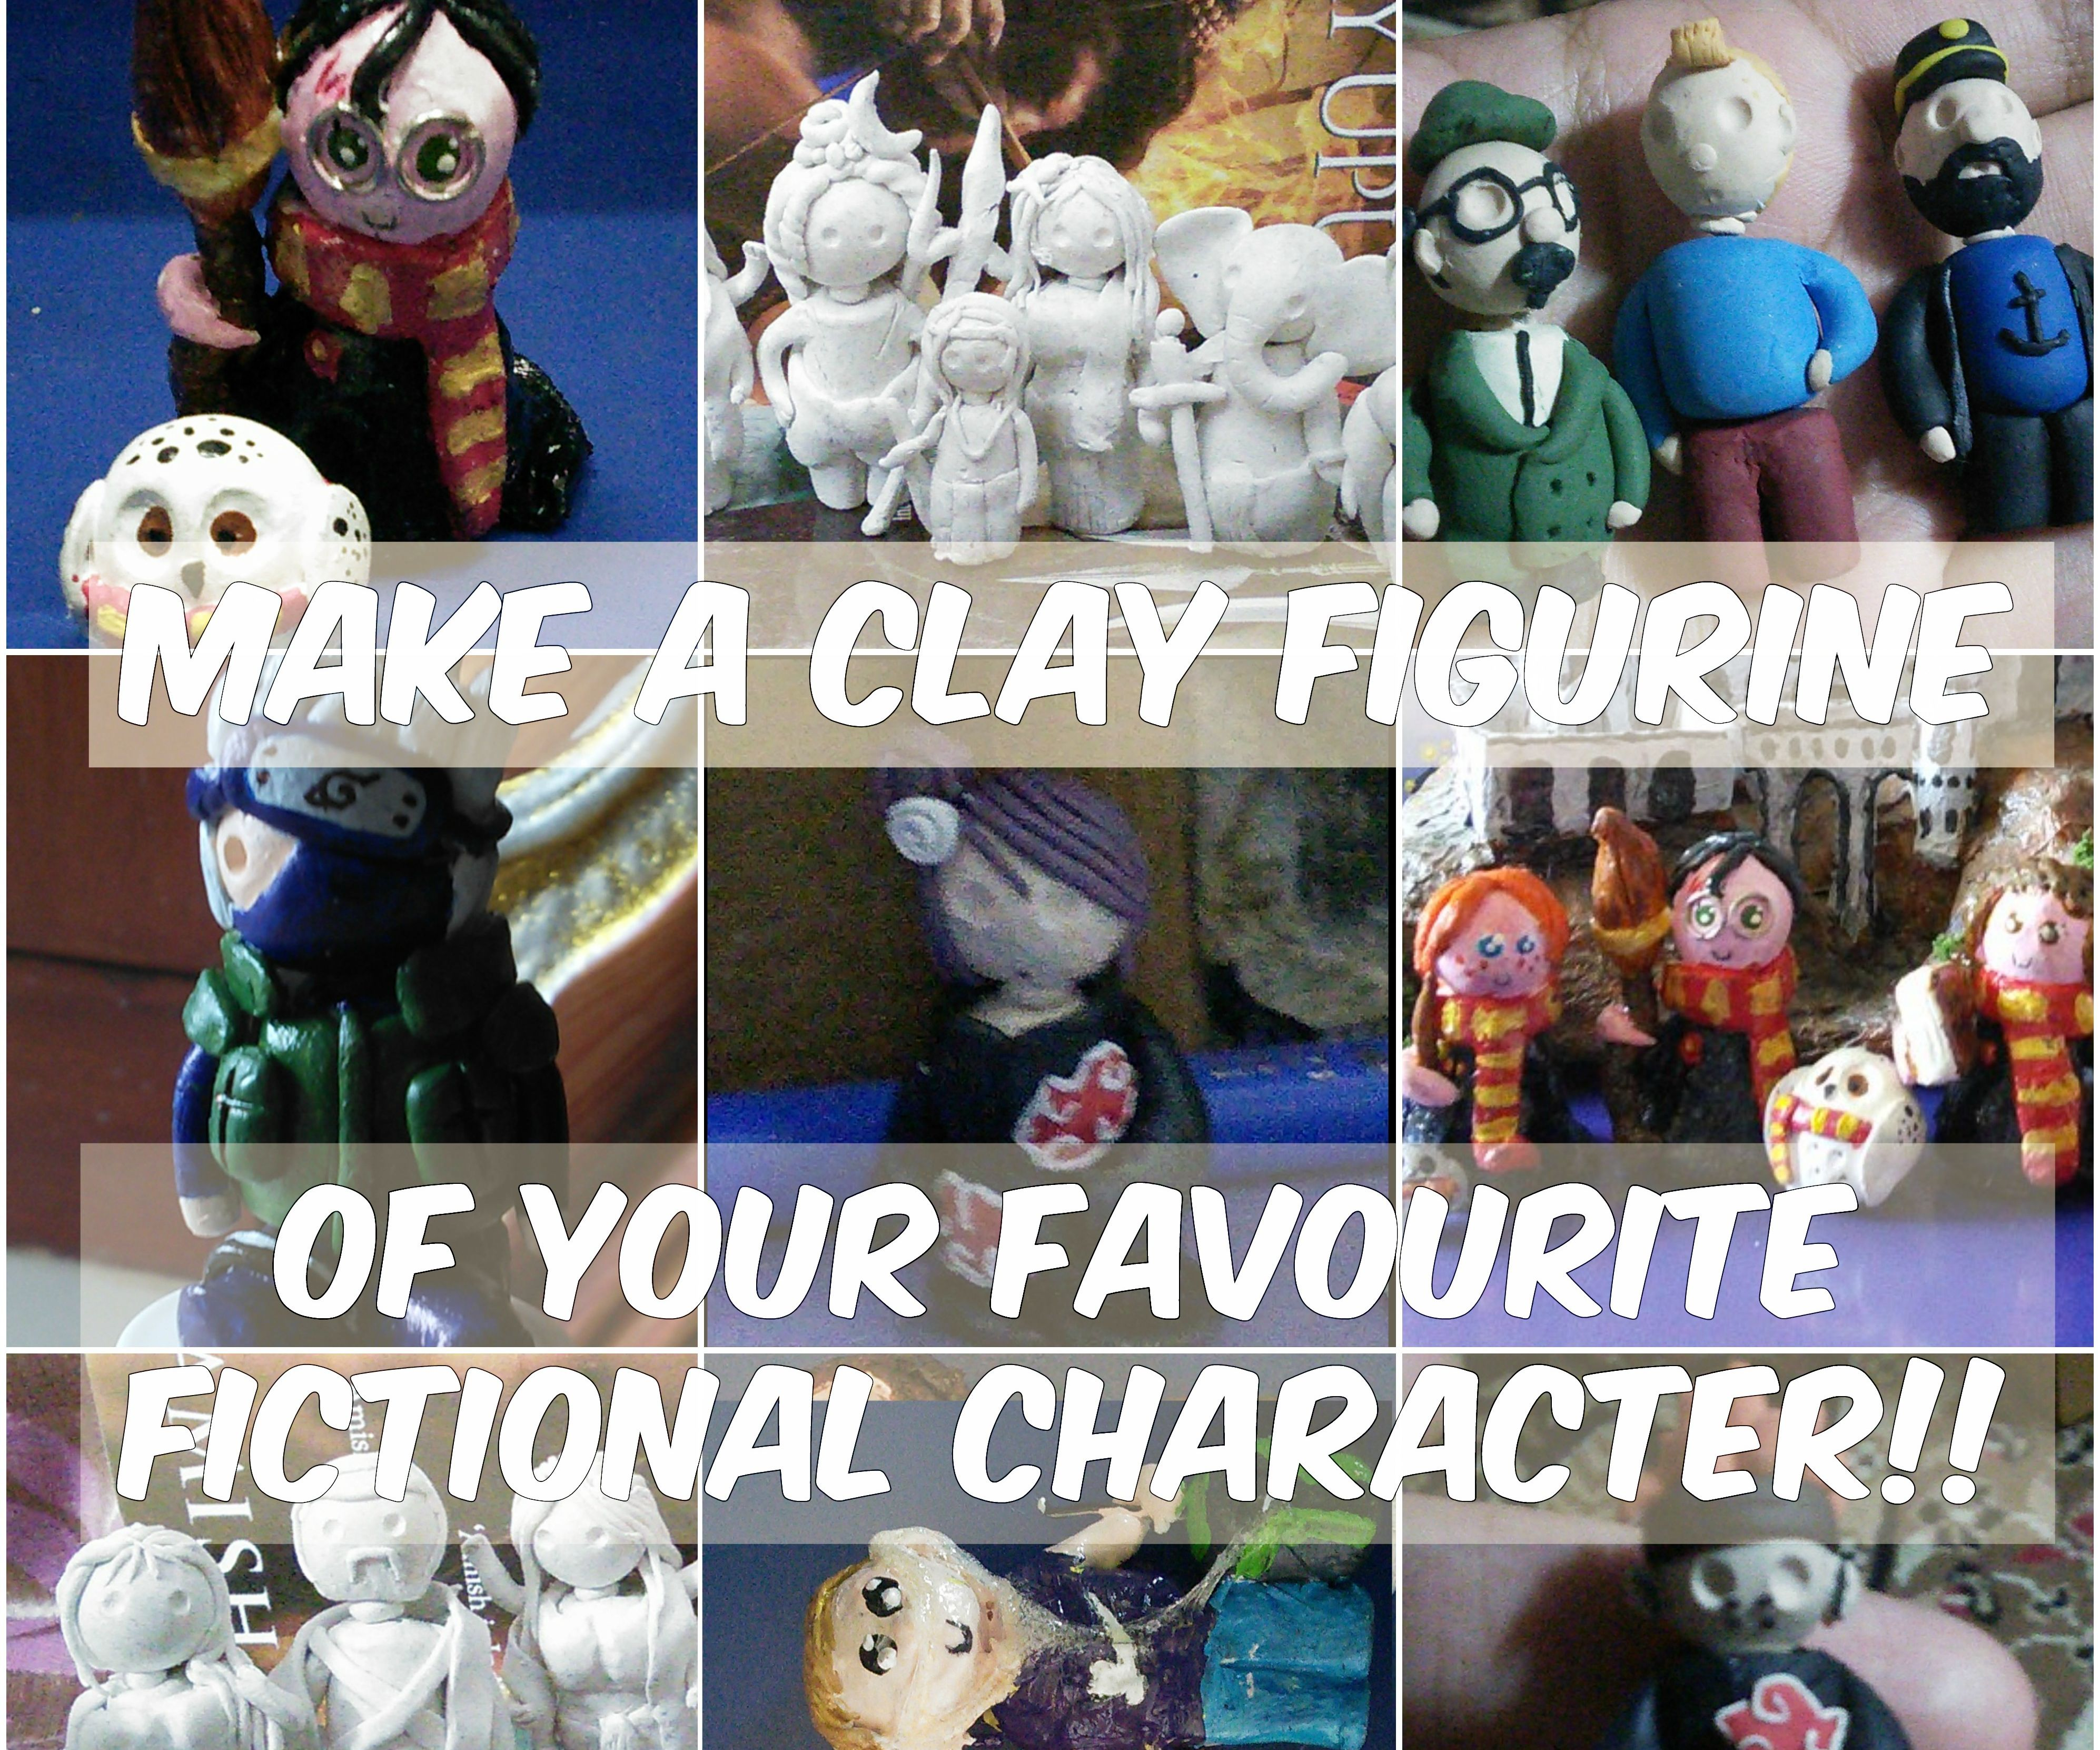 Make a Figurine of your favourite character!